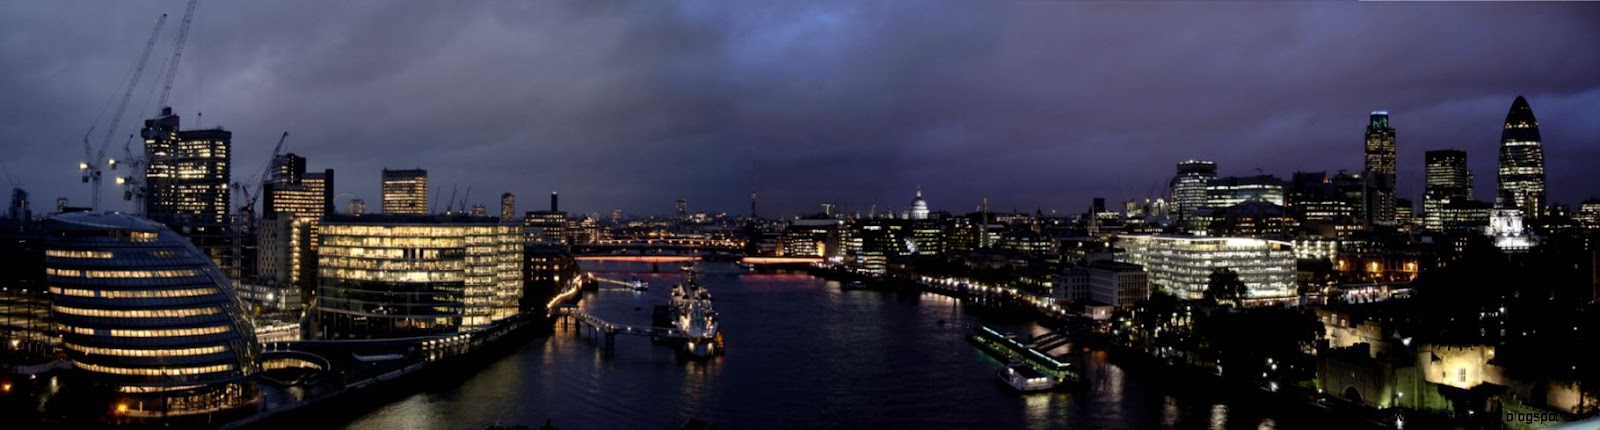 City of London Panorama Wallpaper  2000x521  ID24413